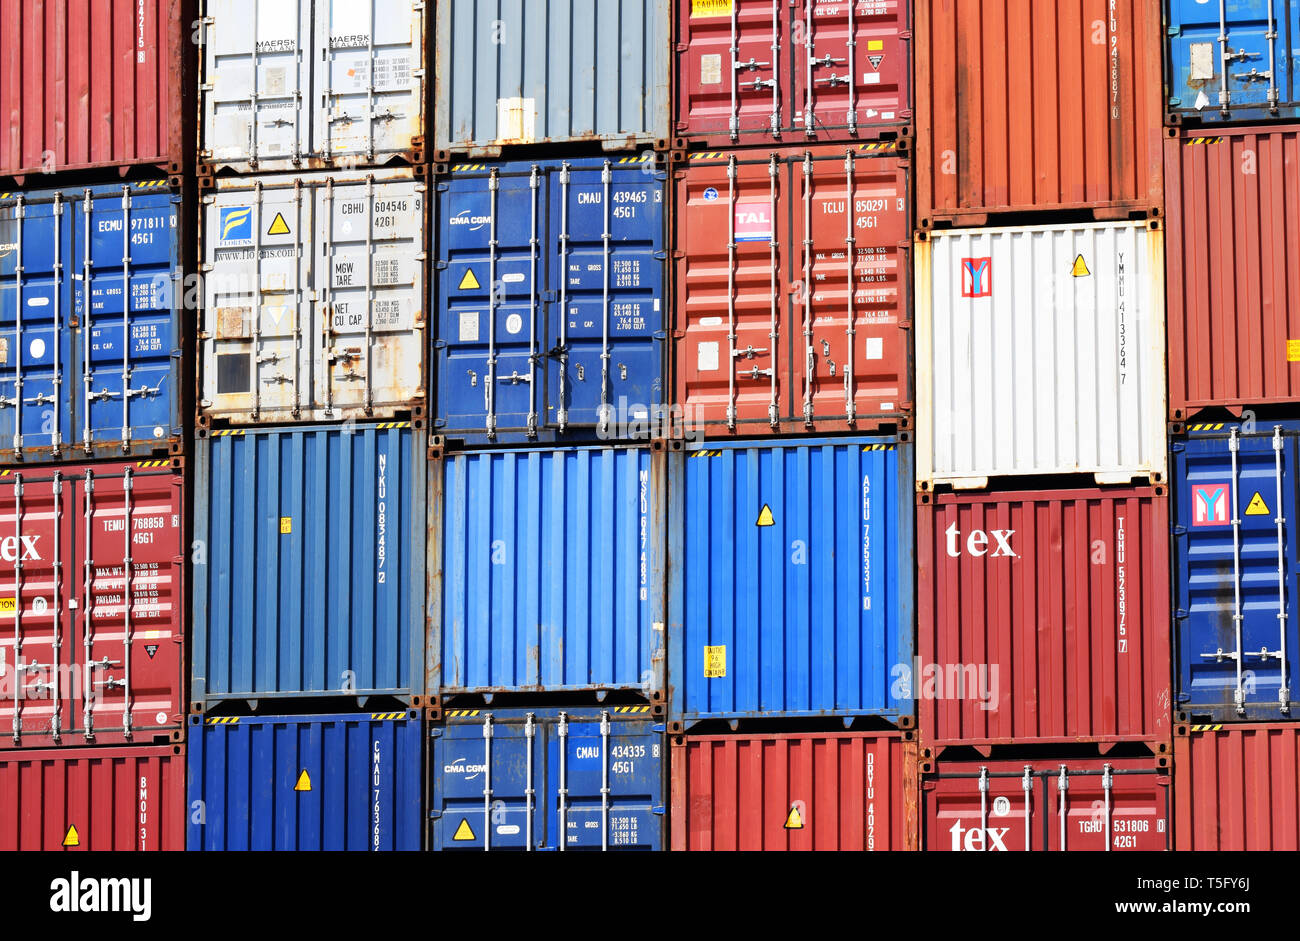 Freight shipping containers at Southampton Docks UK, April 2019 - Stock Image